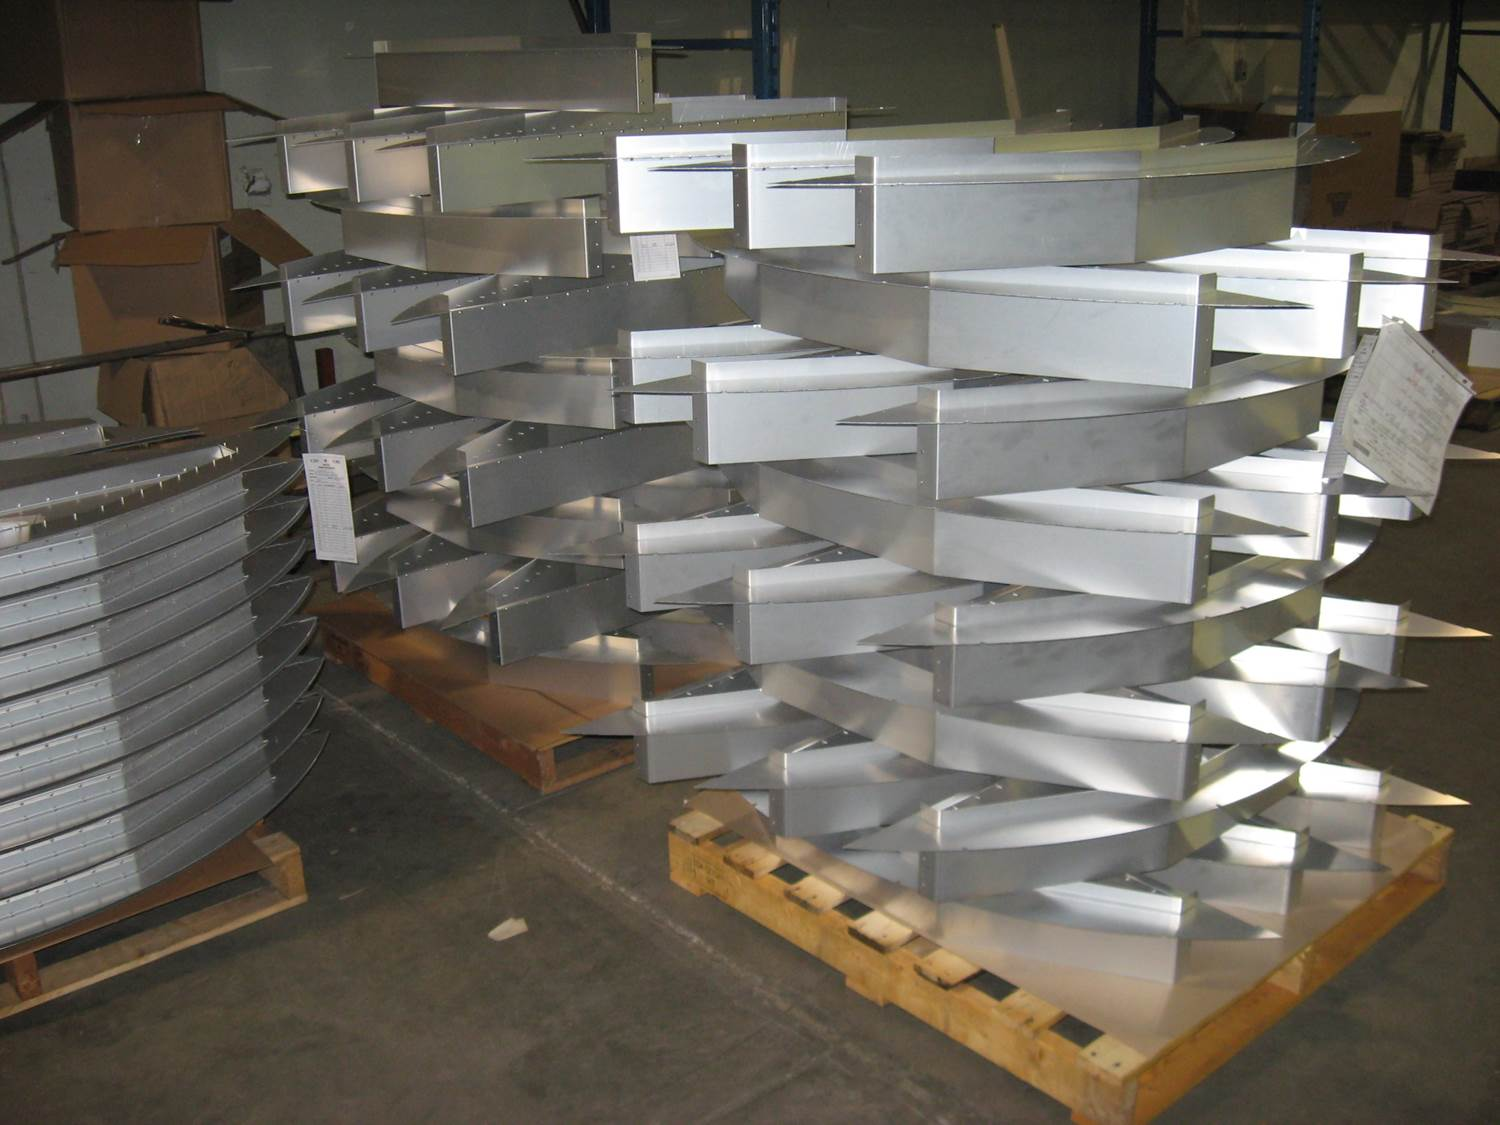 Riveted Aluminum Sub-assemblies stacked